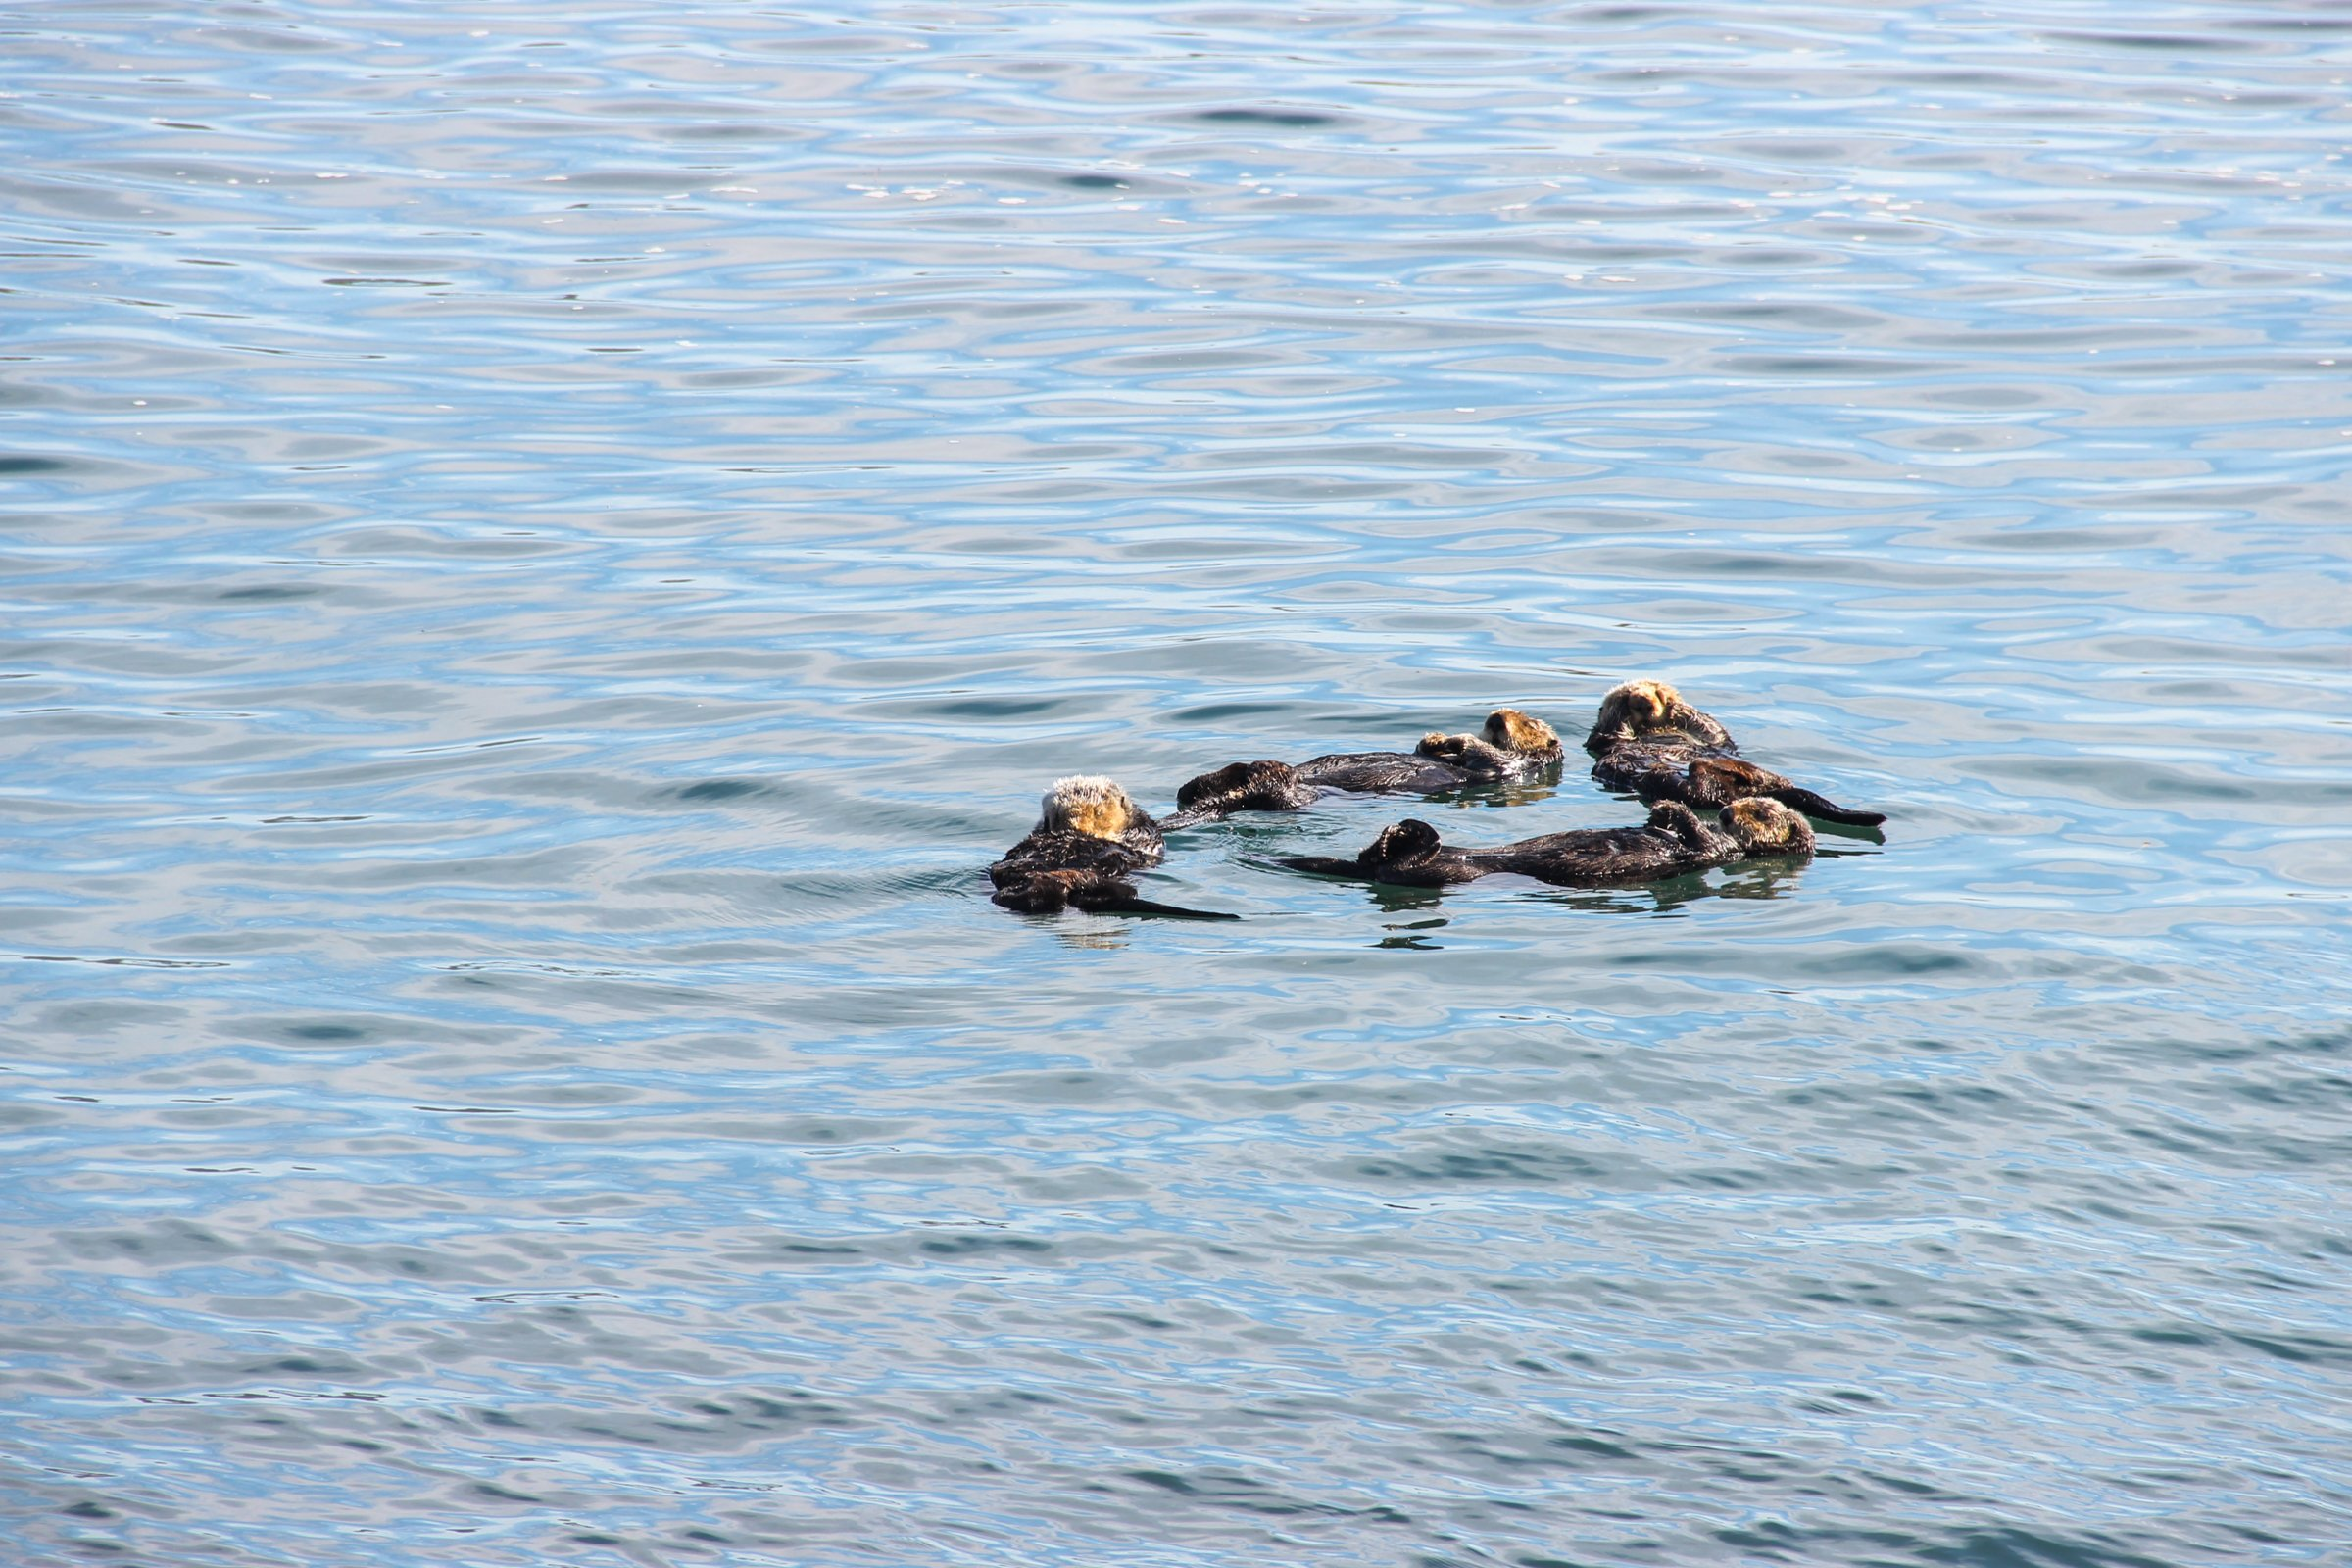 Otters Swimming In Circle In Water